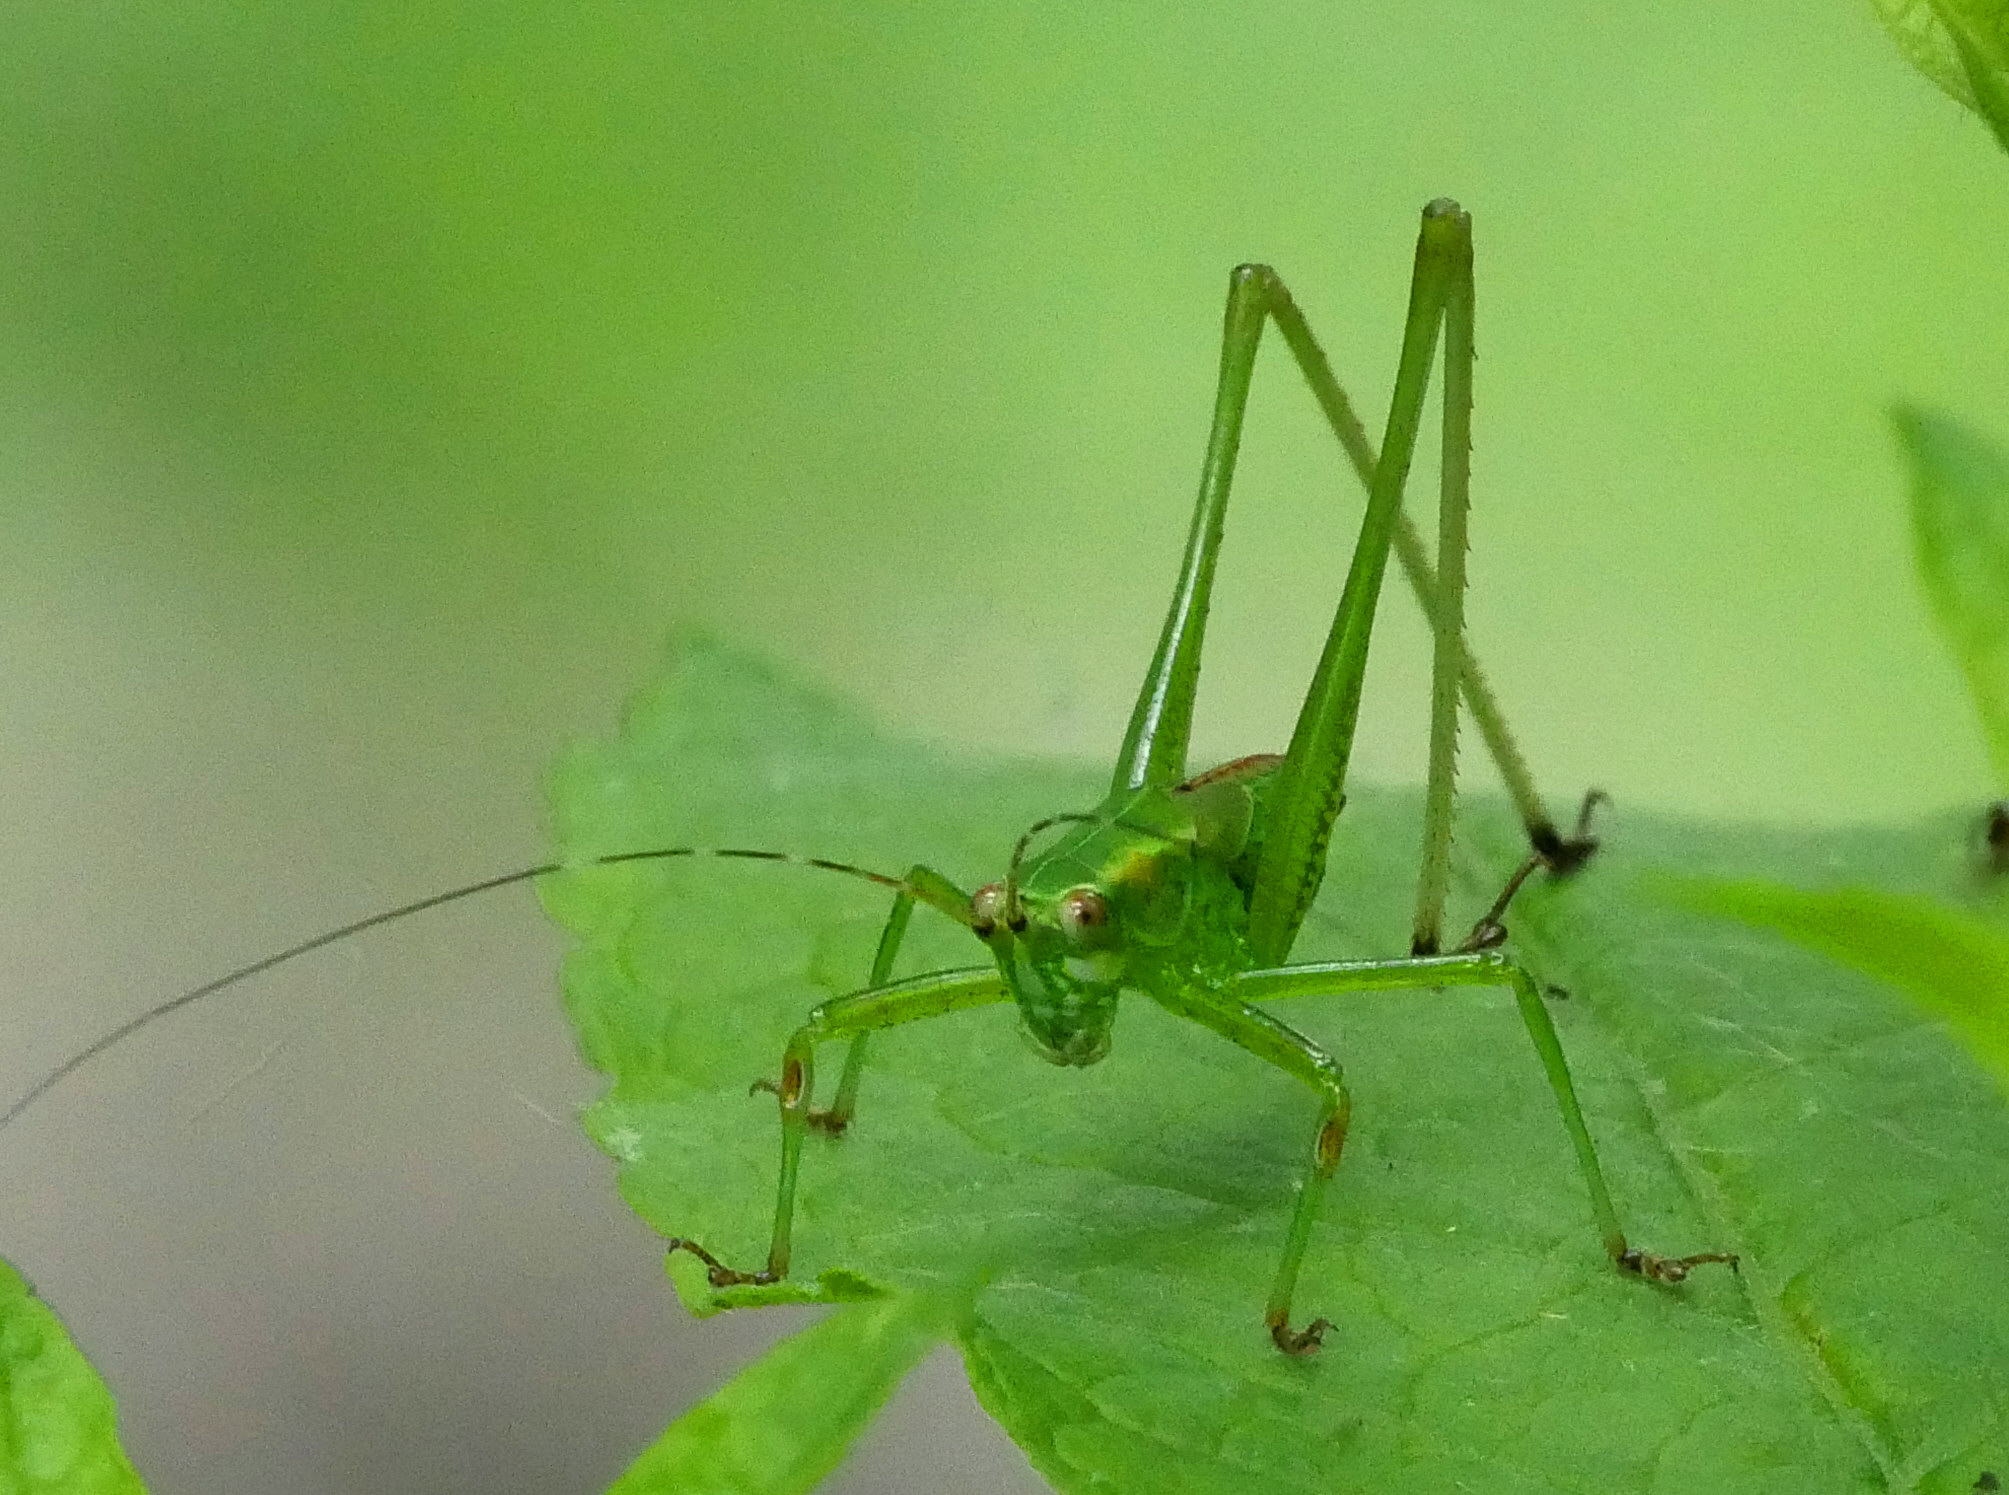 Katydid adult1 LL1 best1 06118 Griggs N birdcam fix